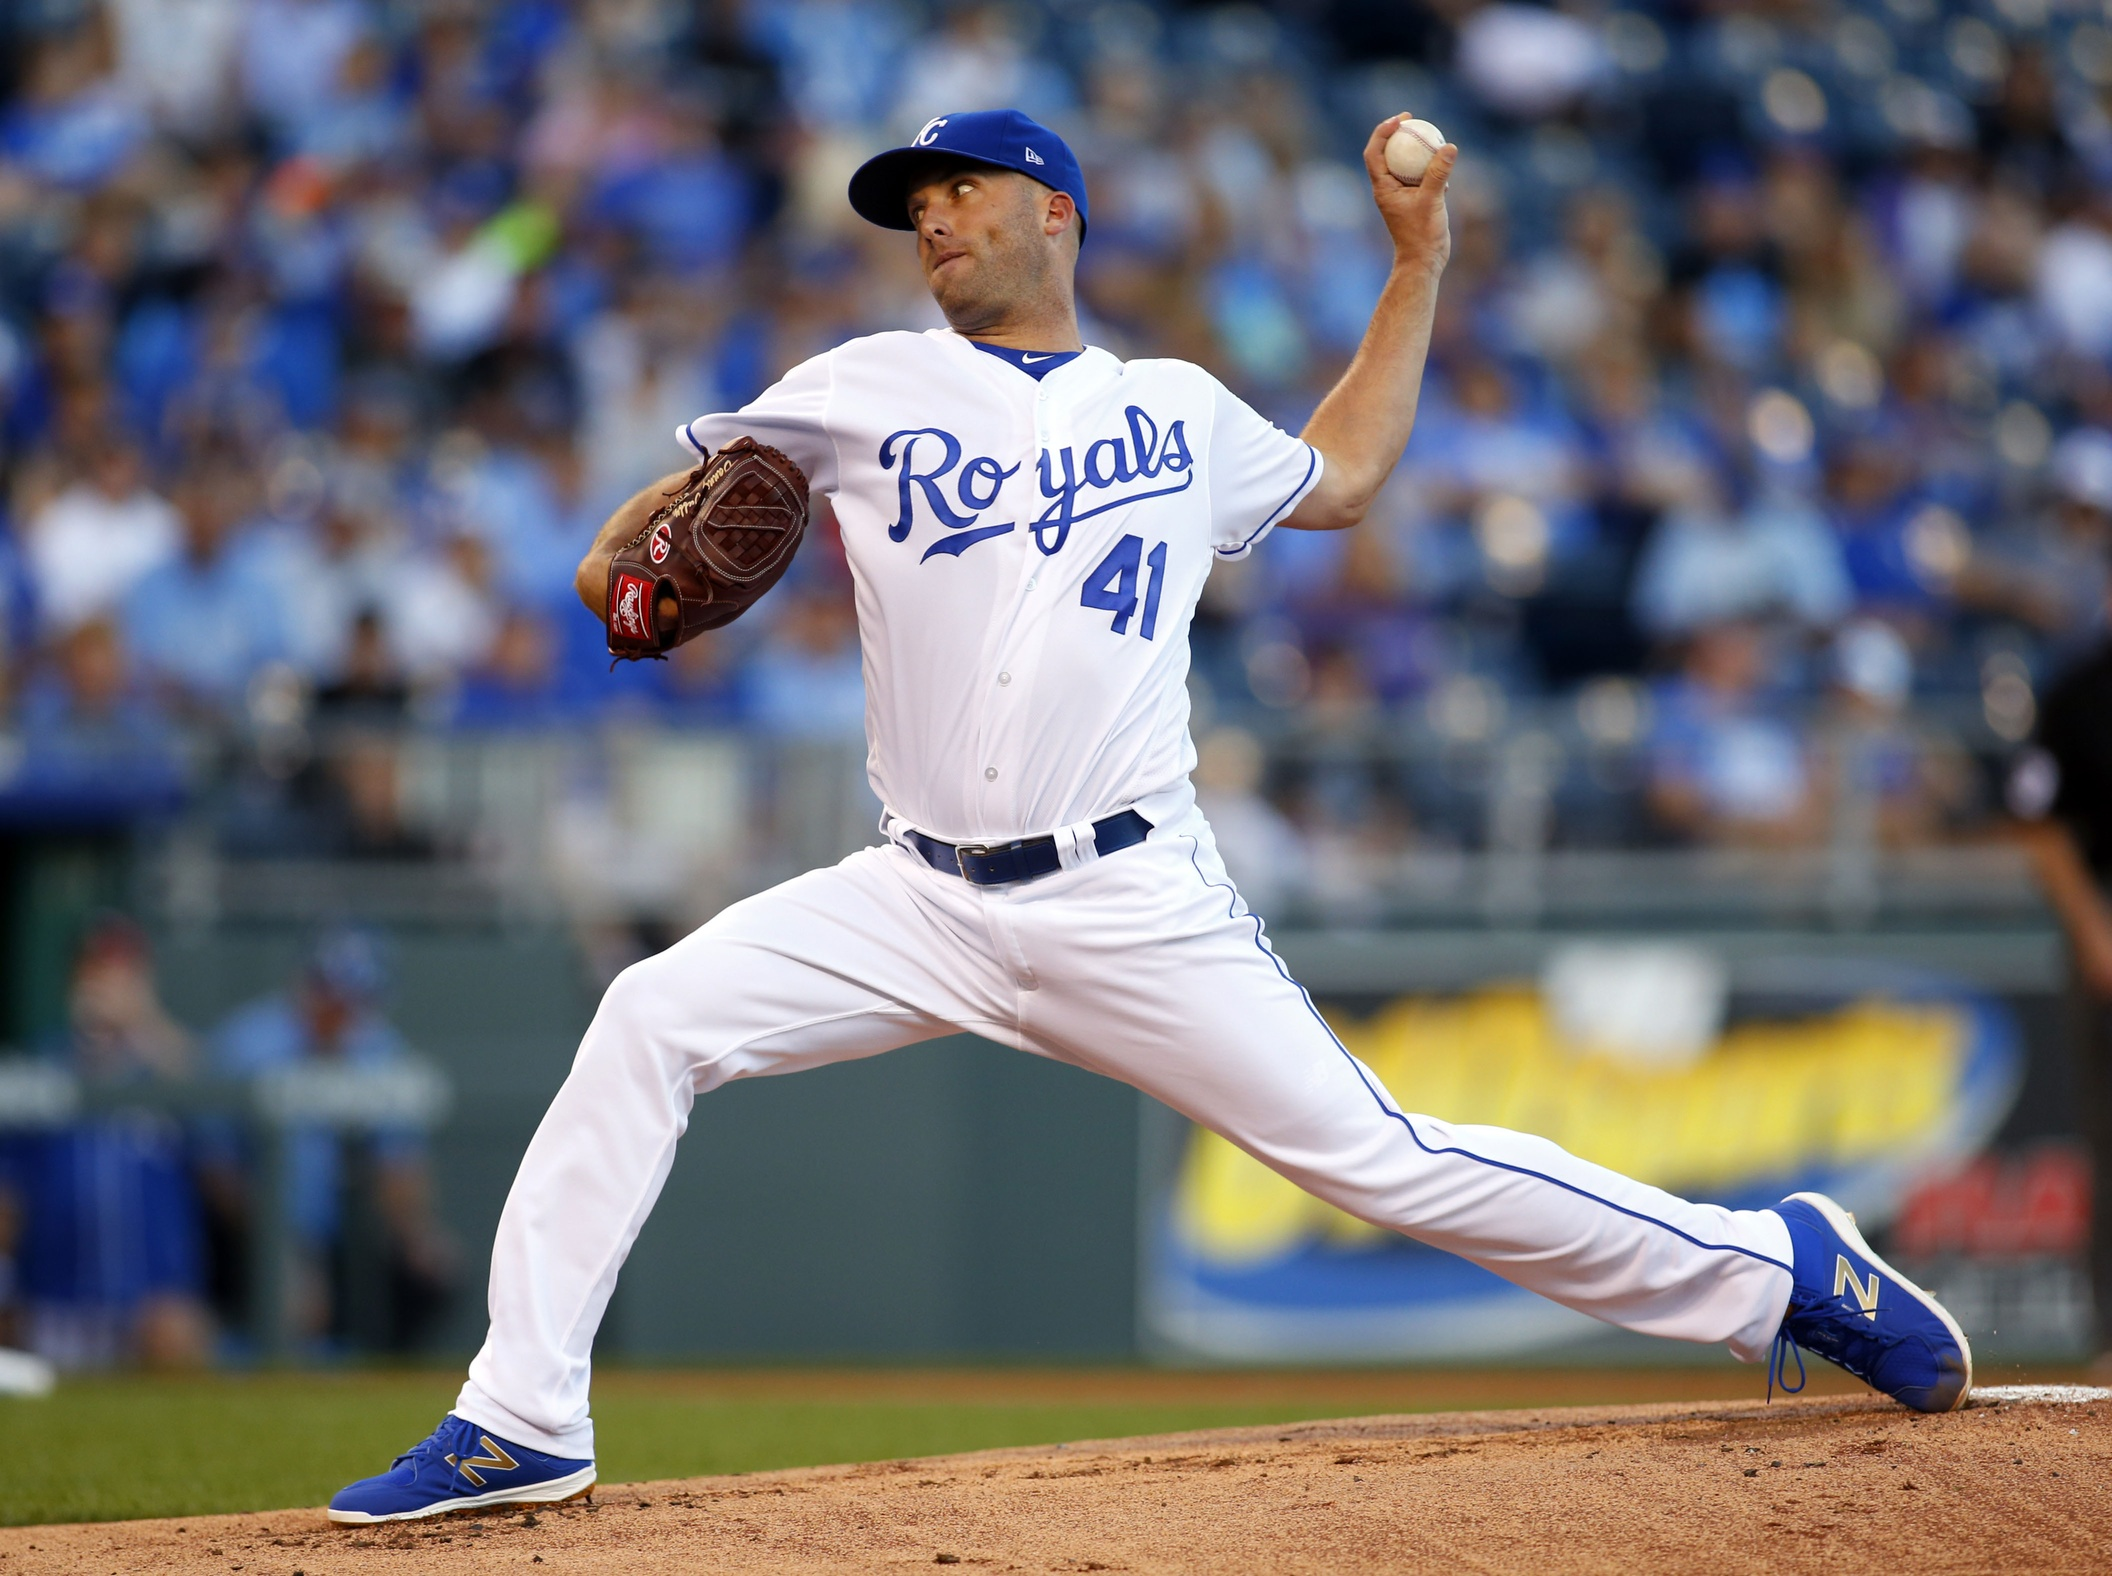 Aug 22, 2017; Kansas City, MO, USA; Kansas City Royals starting pitcher Danny Duffy (41) pitches against the Colorado Rockies in the first inning at Kauffman Stadium. Mandatory Credit: Jay Biggerstaff-USA TODAY Sports